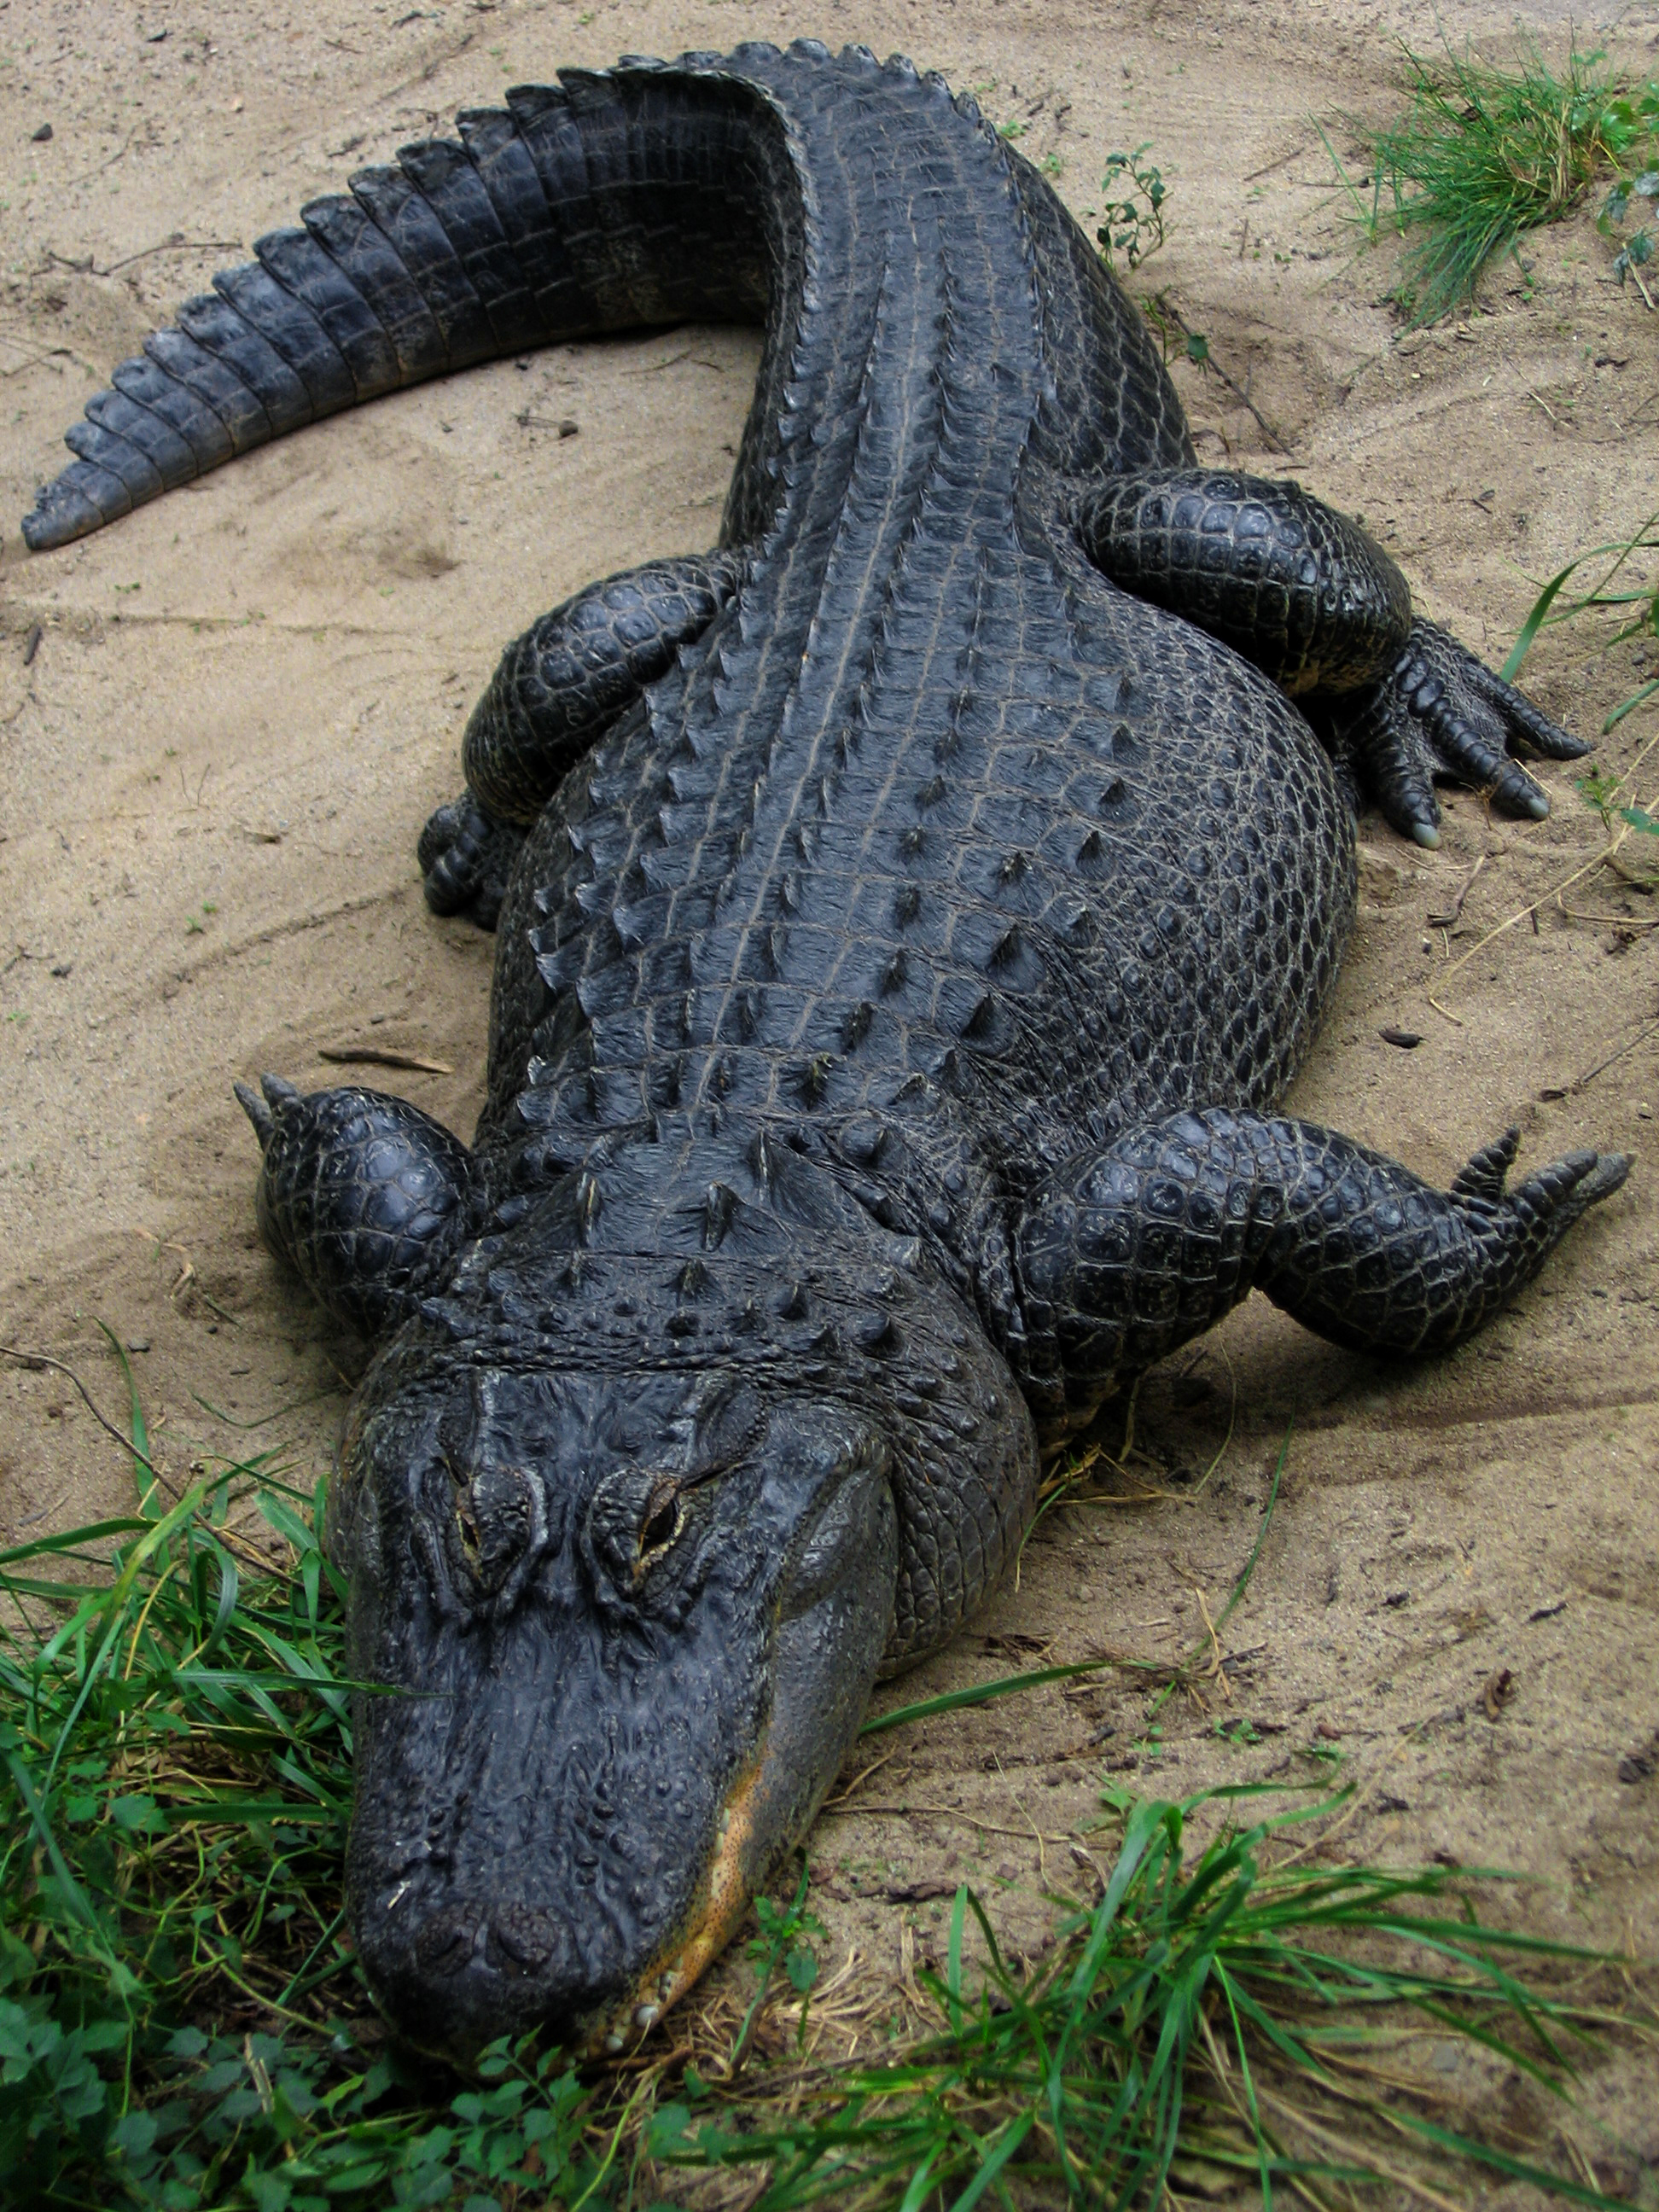 http://upload.wikimedia.org/wikipedia/commons/0/03/American_Alligator.jpg